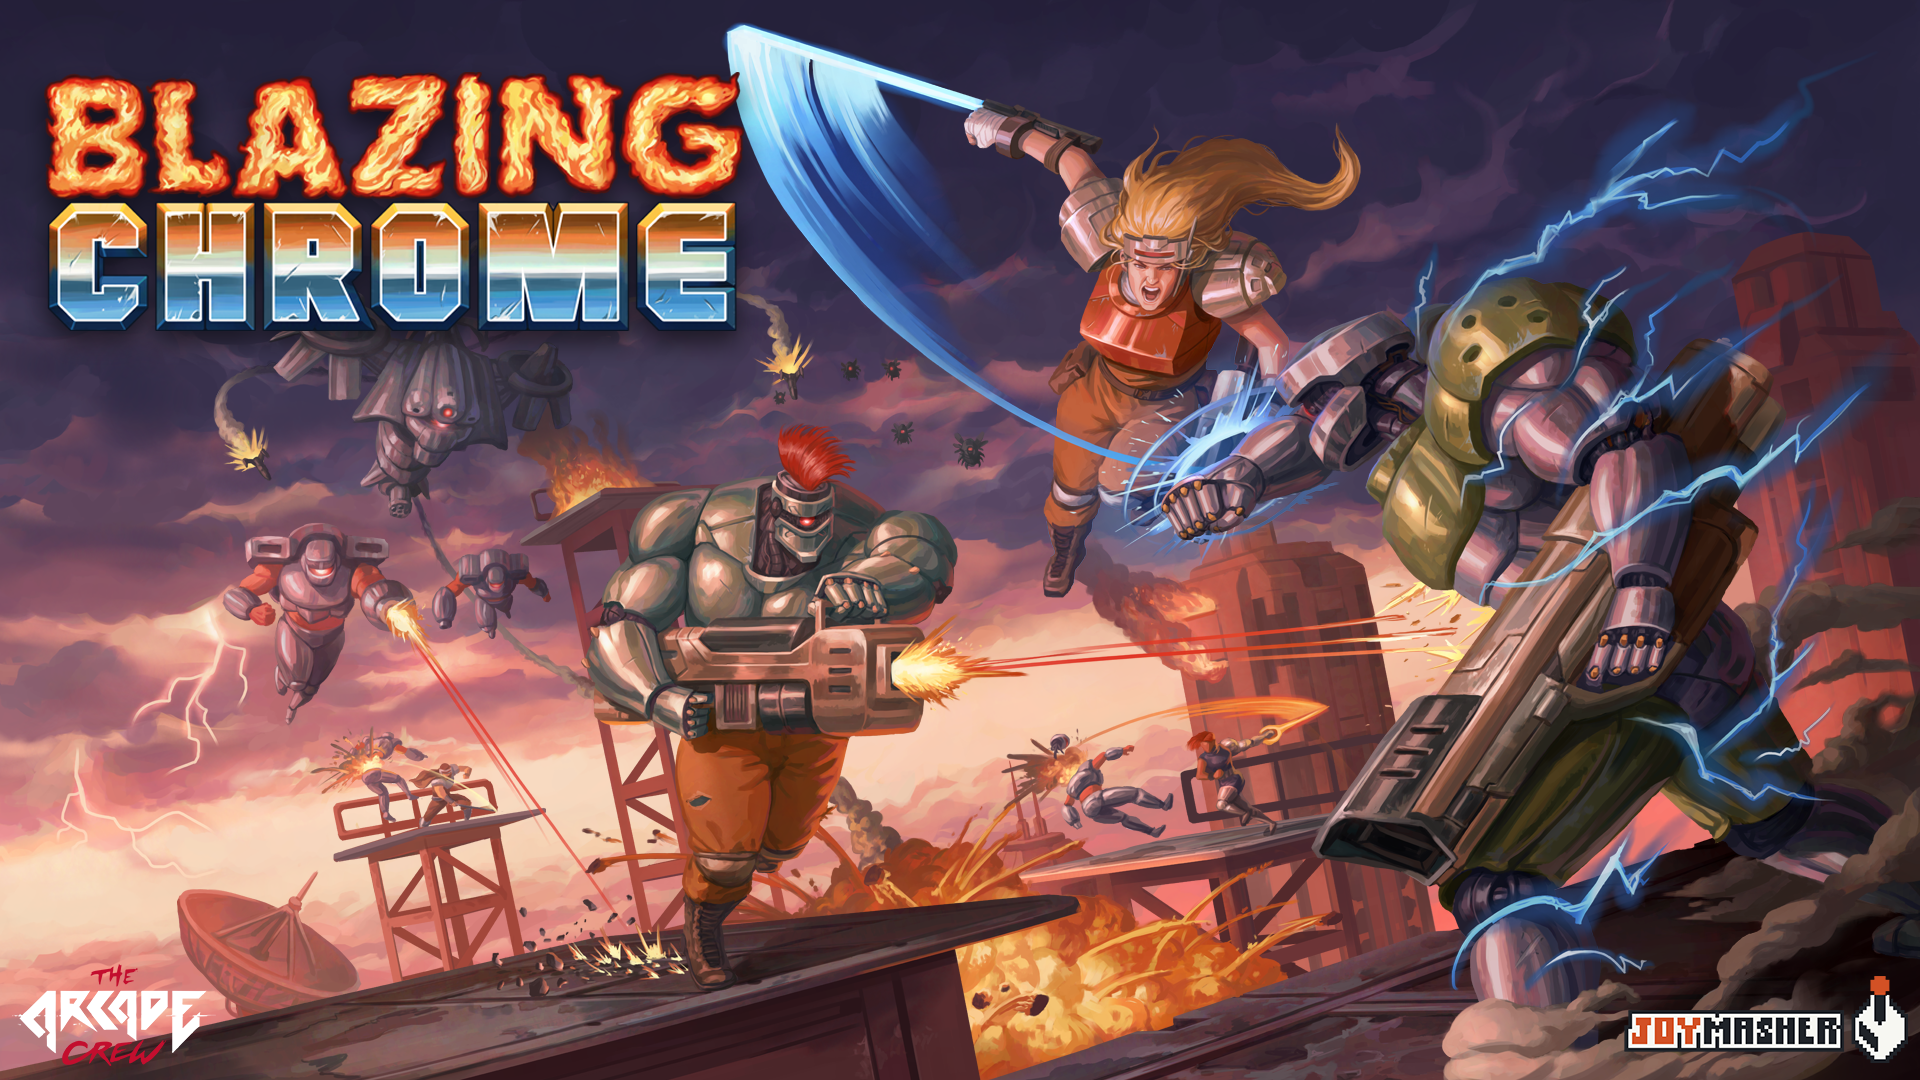 Blazing Chrome new Trailer!